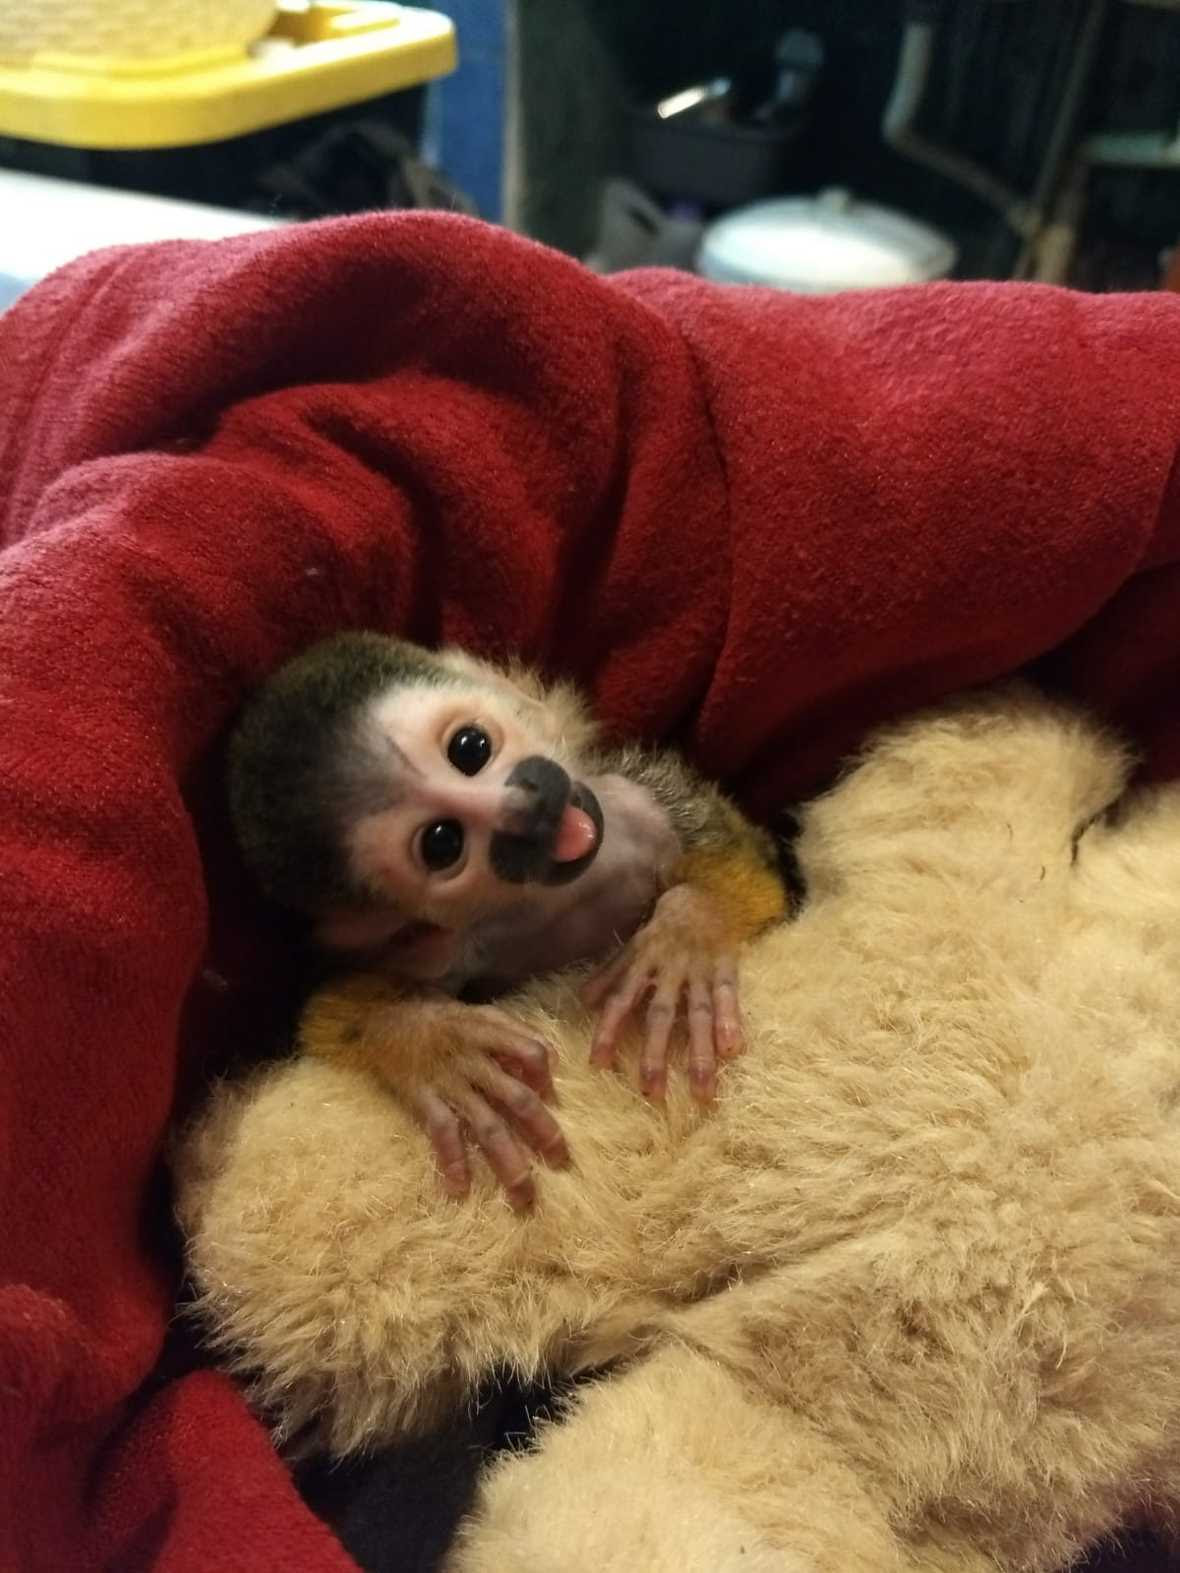 "Baby squirrel monkey peering into camera with mouth open in a ""smile"", wrapped in red blanket on stuffed animal"